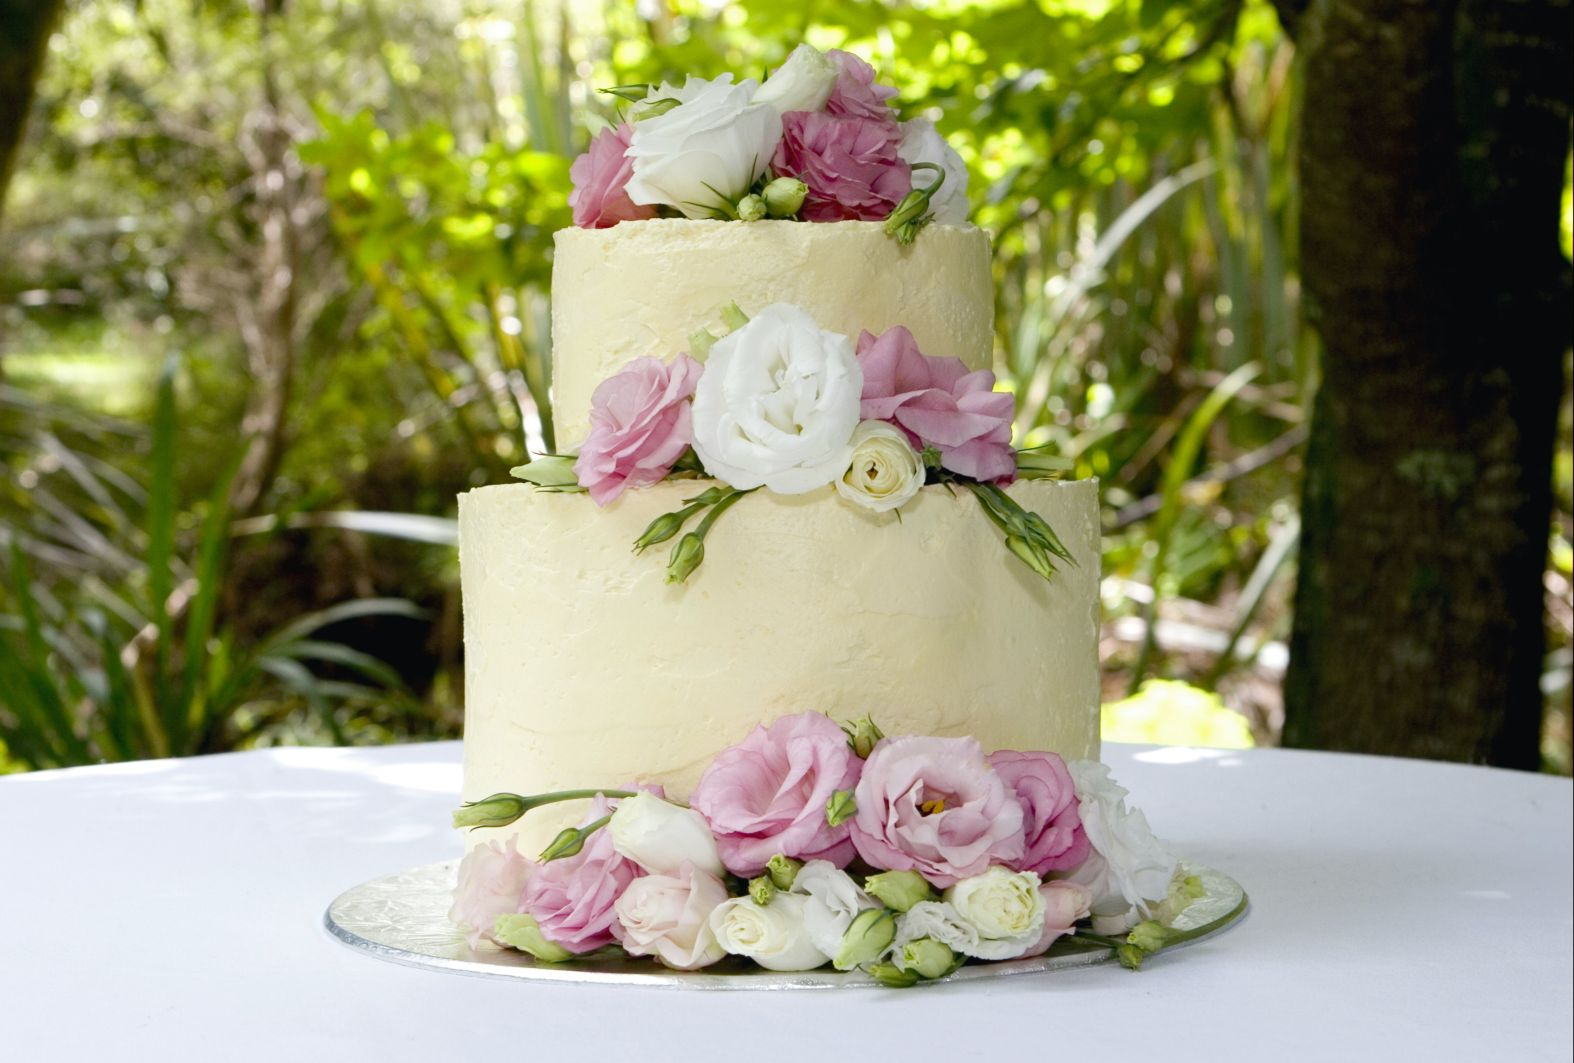 my darling lemon thyme gluten free chocolate wedding cake recipe